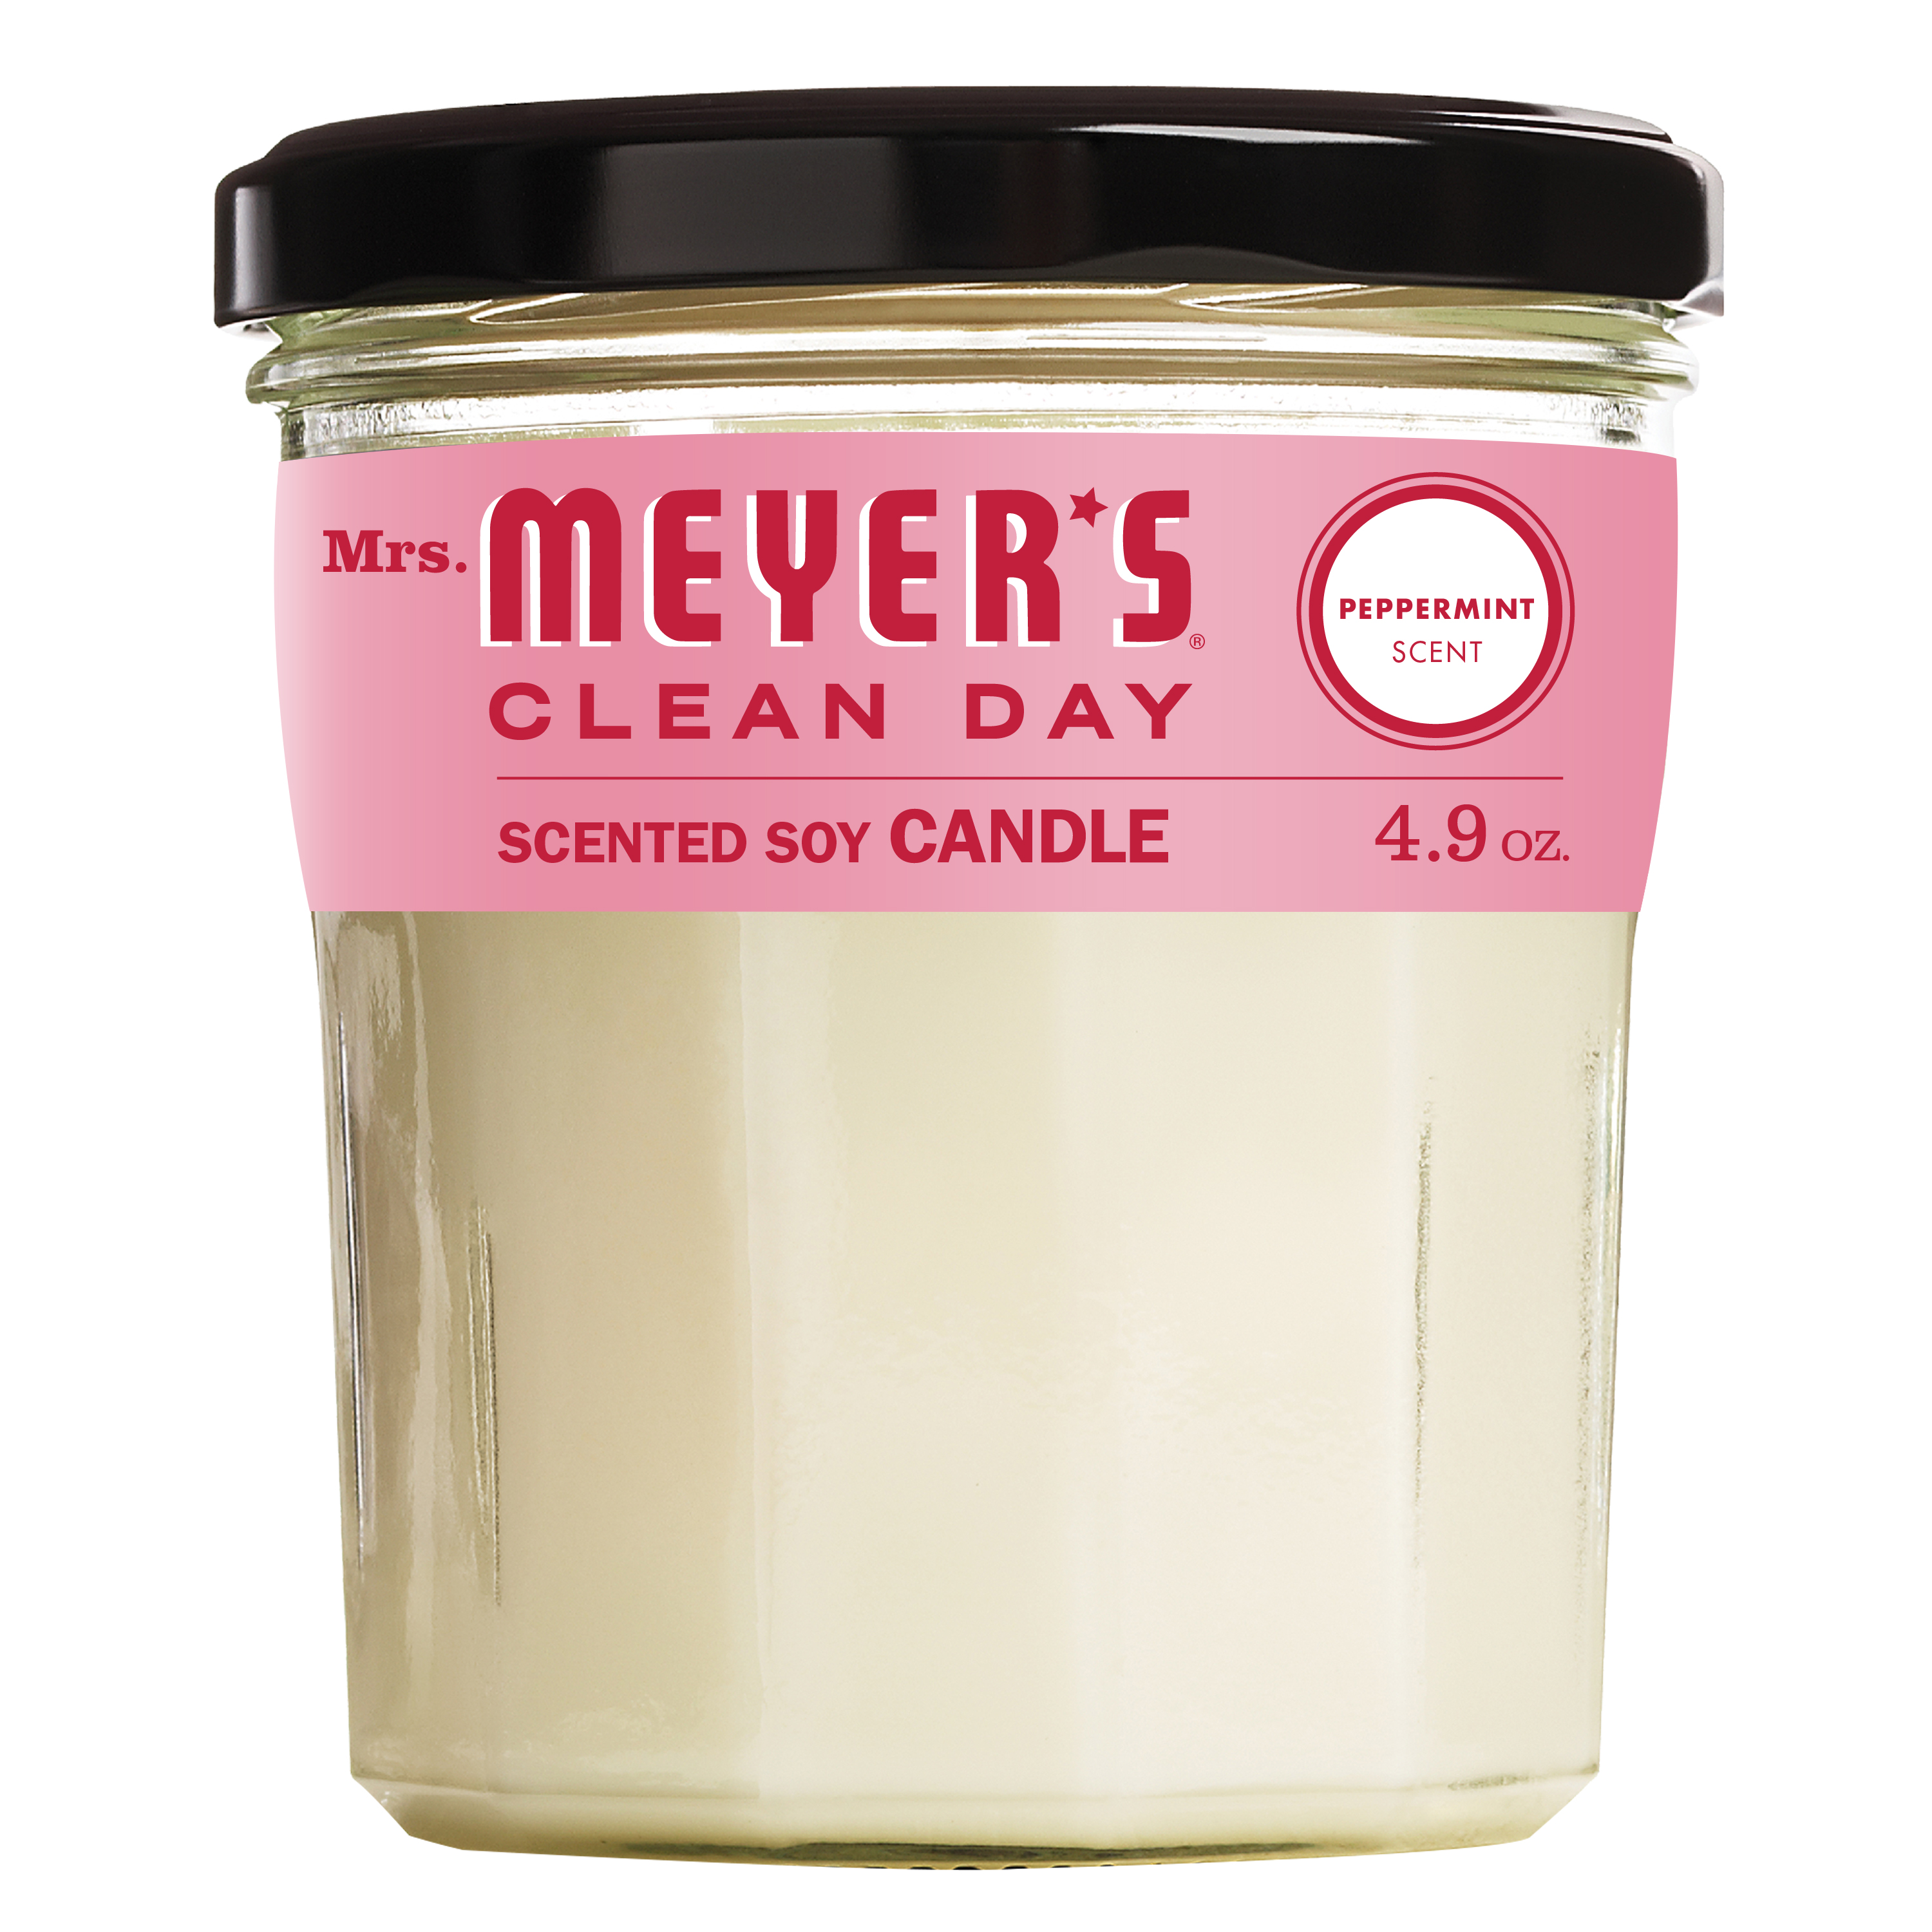 Mrs. Meyer's Clean Day Scented Soy Candle, Small Glass, Peppermint, 4.9 oz